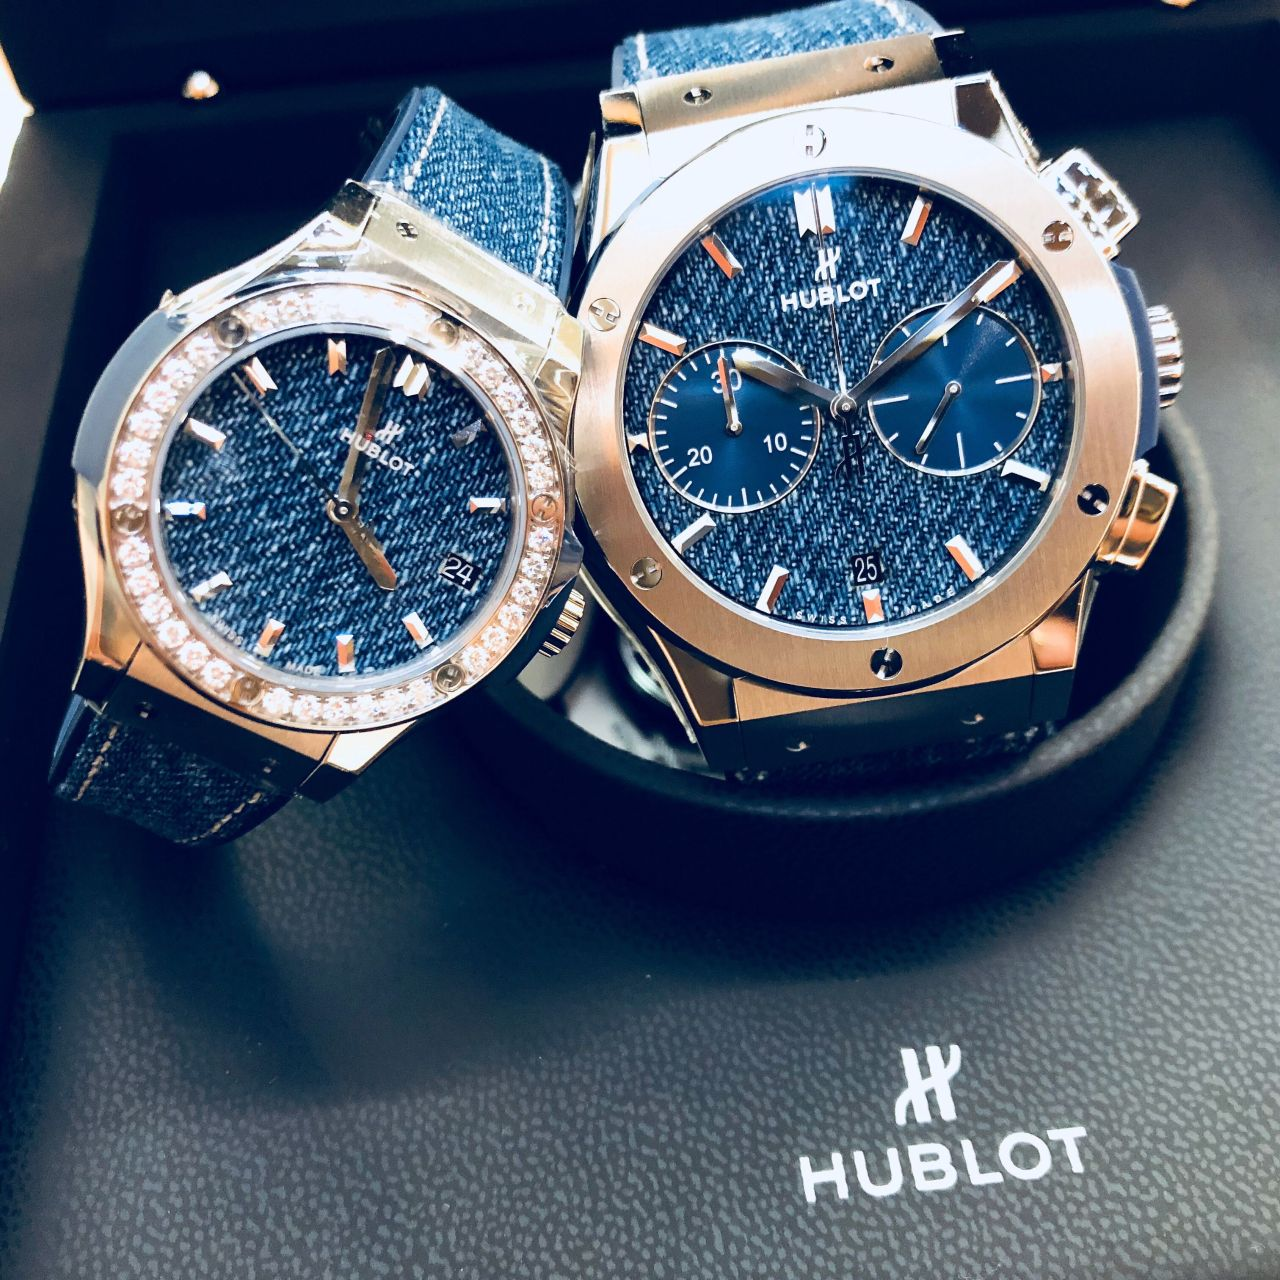 on sale 7d7a2 24333 HUBLOT × ジーンズ   タイムアート店   岡山拠点のトミヤ ...